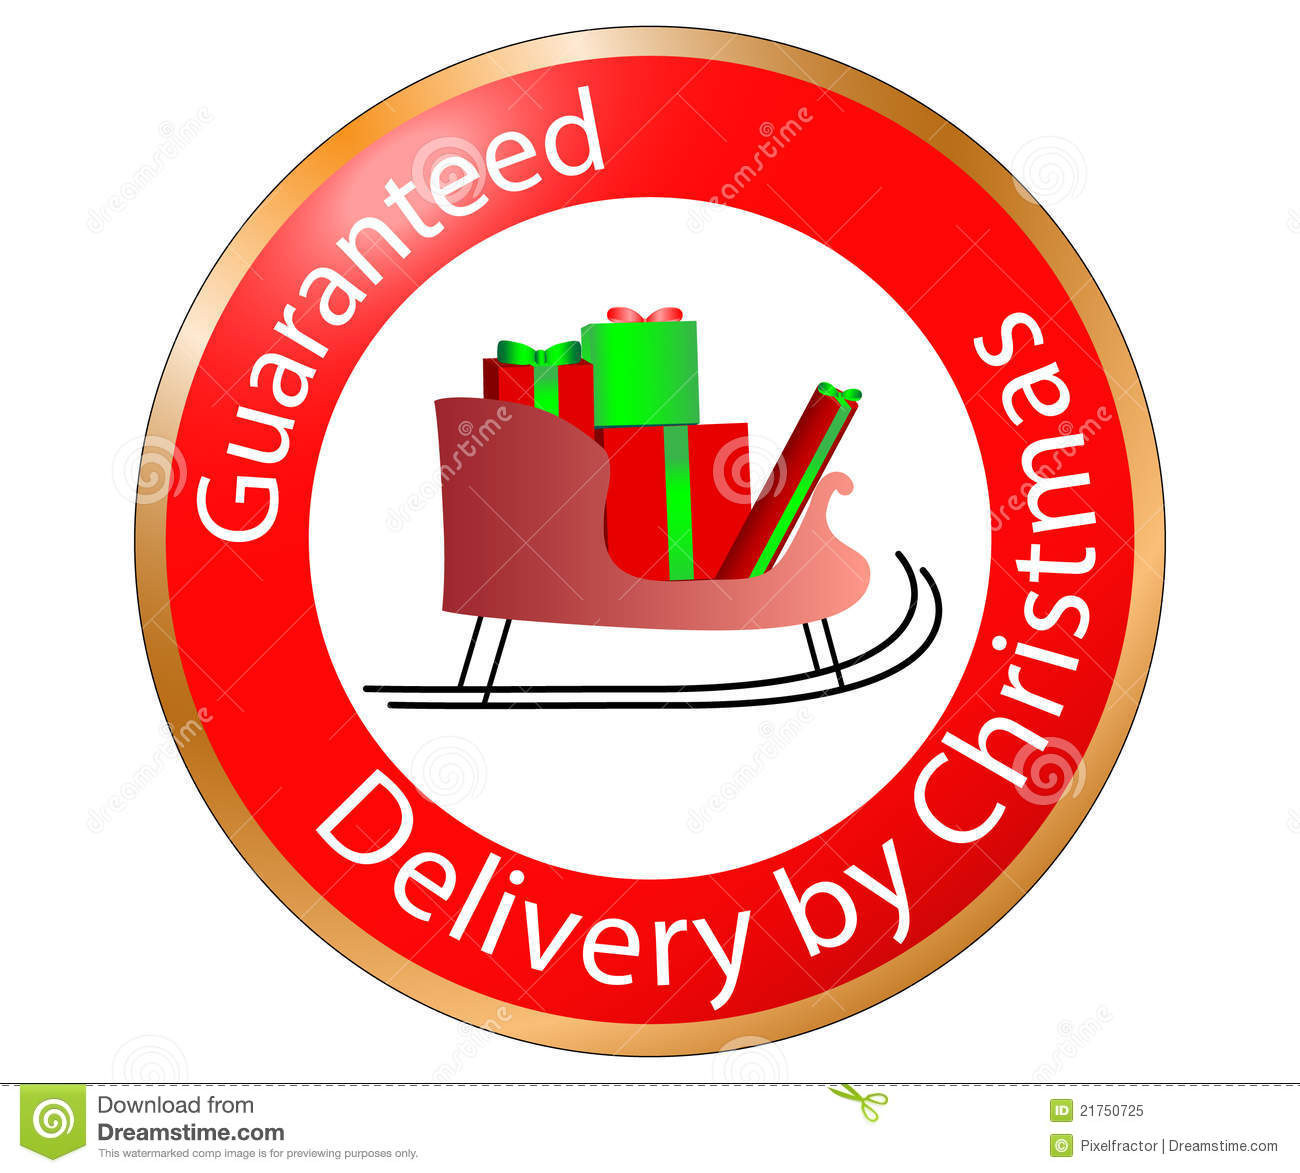 delivery christmas 2017 - Grasscloth Wallpaper